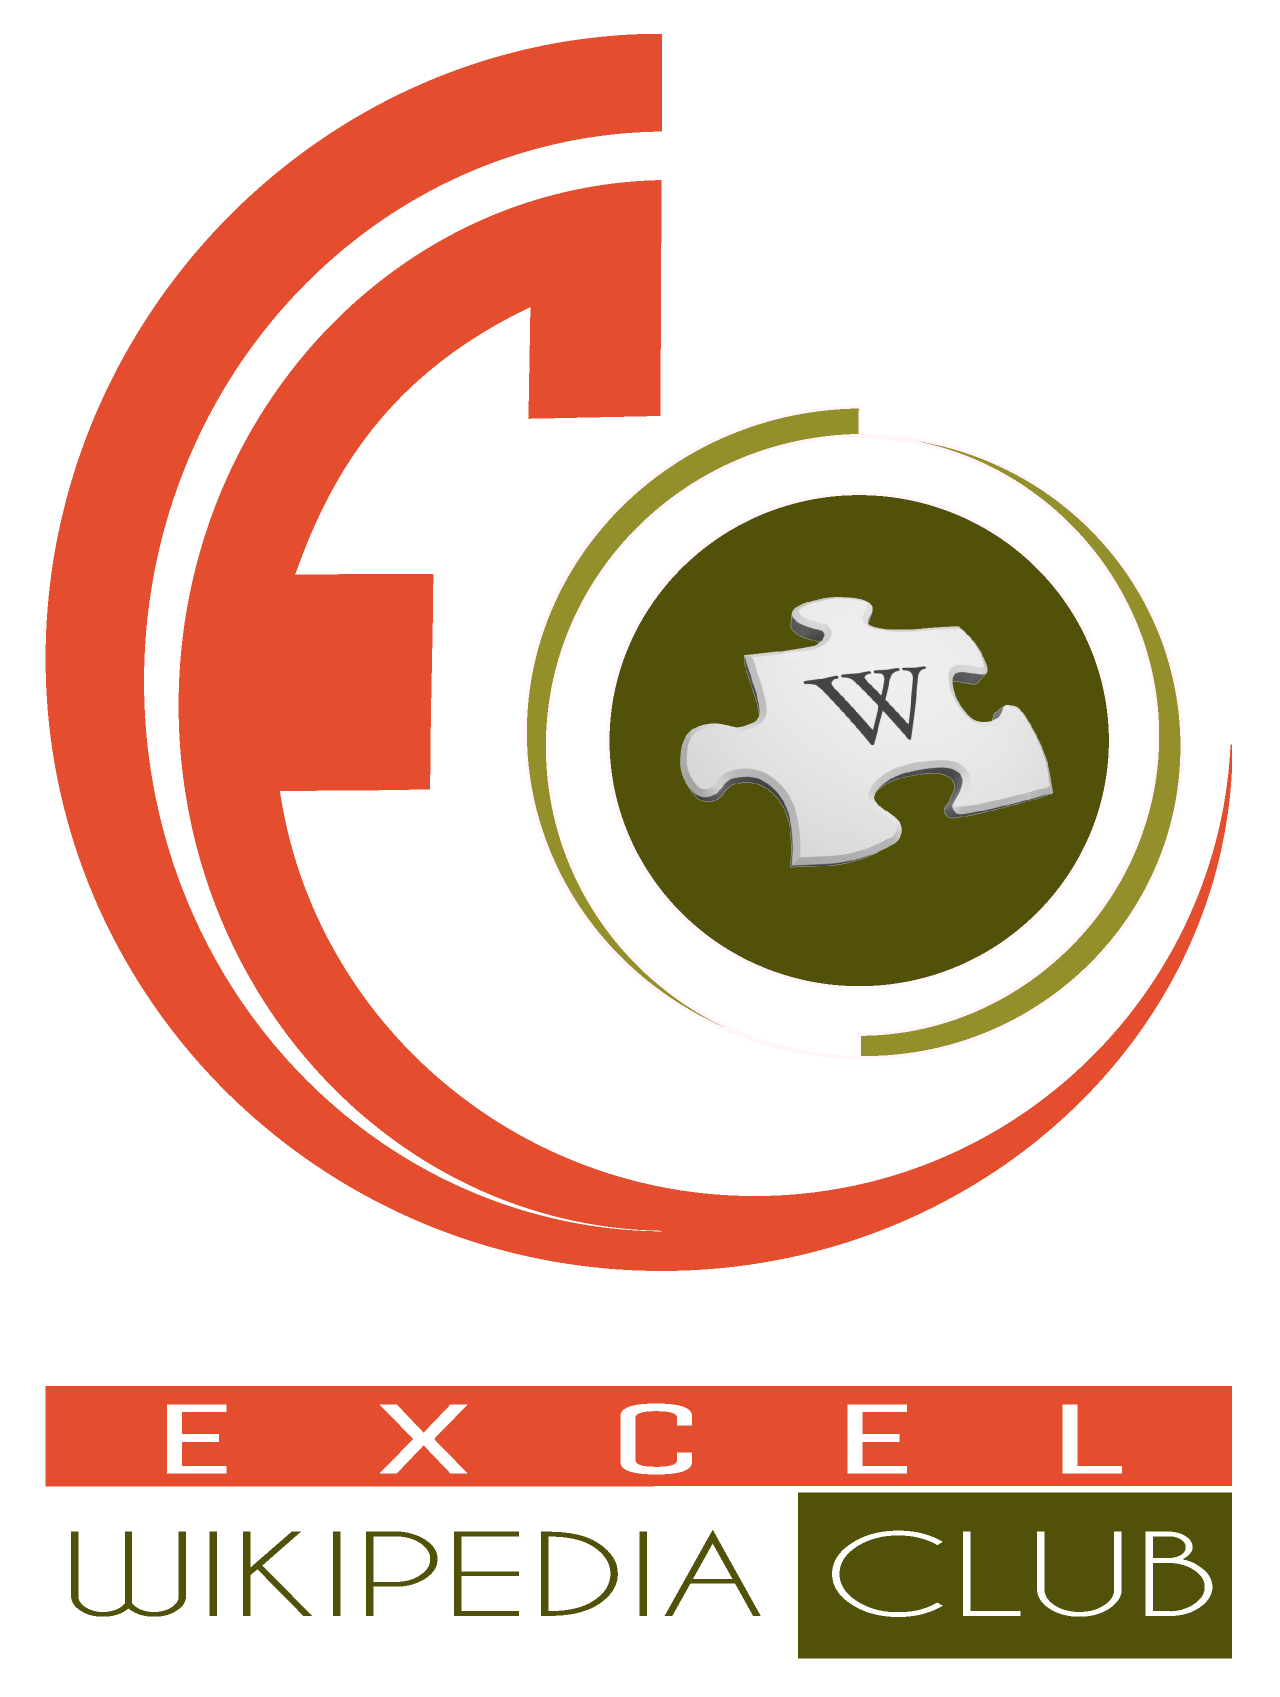 Fileexcel wikipedia logog wikimedia commons fileexcel wikipedia logog biocorpaavc